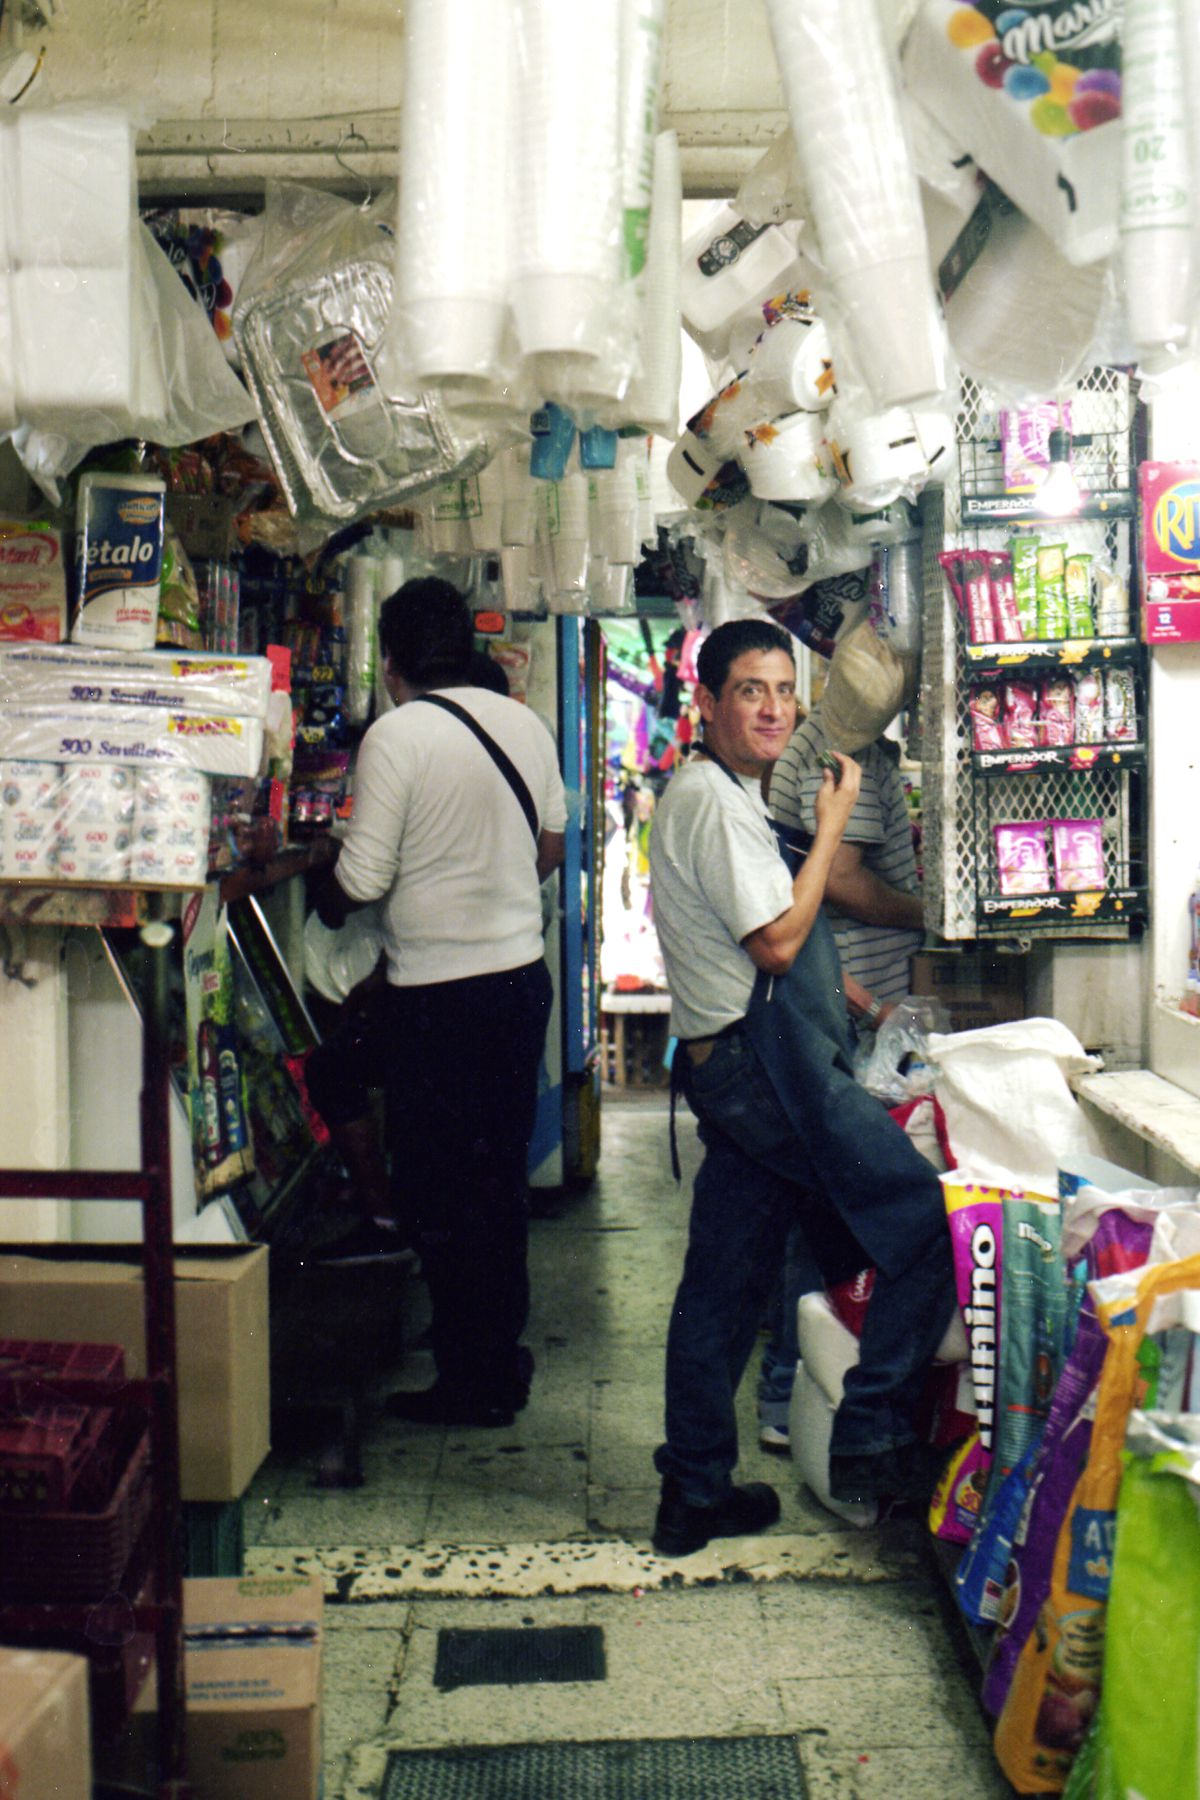 A vendor looks at the camera in his stall selling household goods